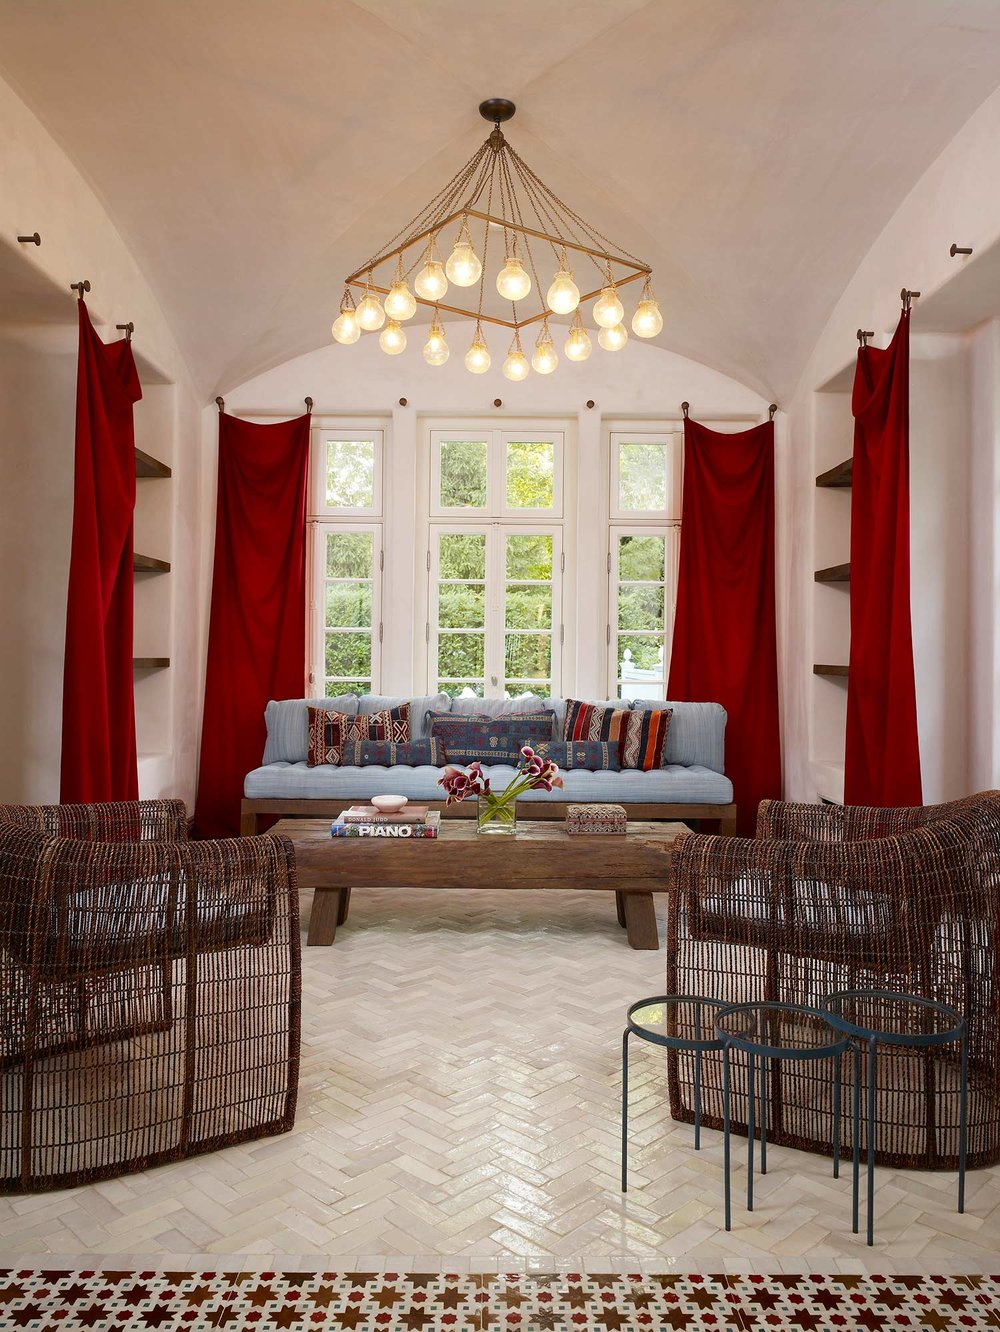 upholstery & window treatments  Interior Design: Leslie Jones & Associates, Inc.